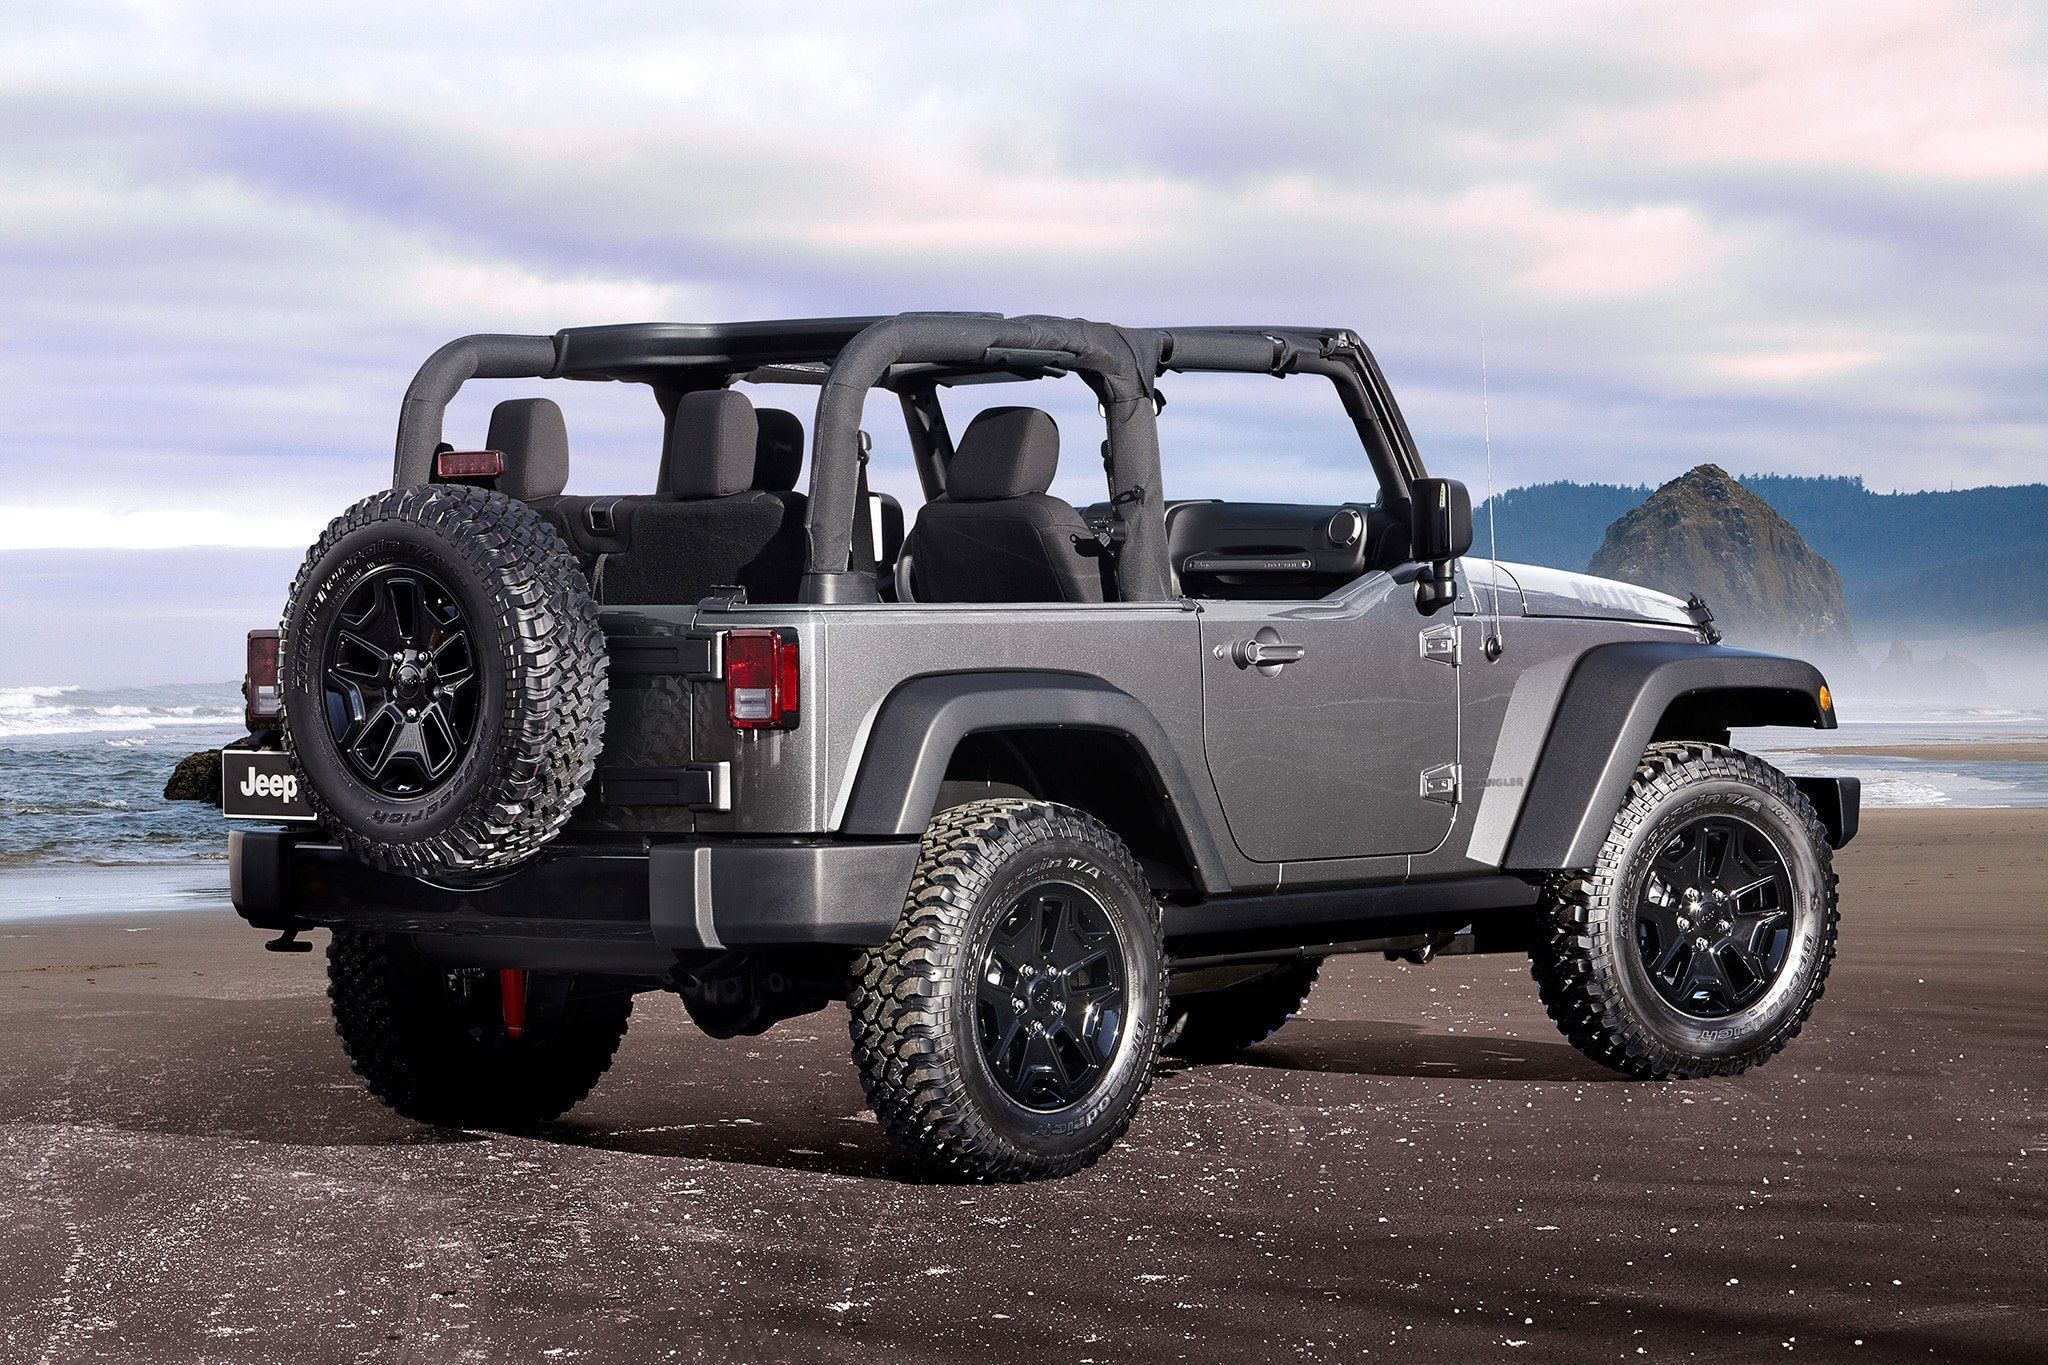 Jeep Wrangler Gas Mileage 2017 | Best new cars for 2018